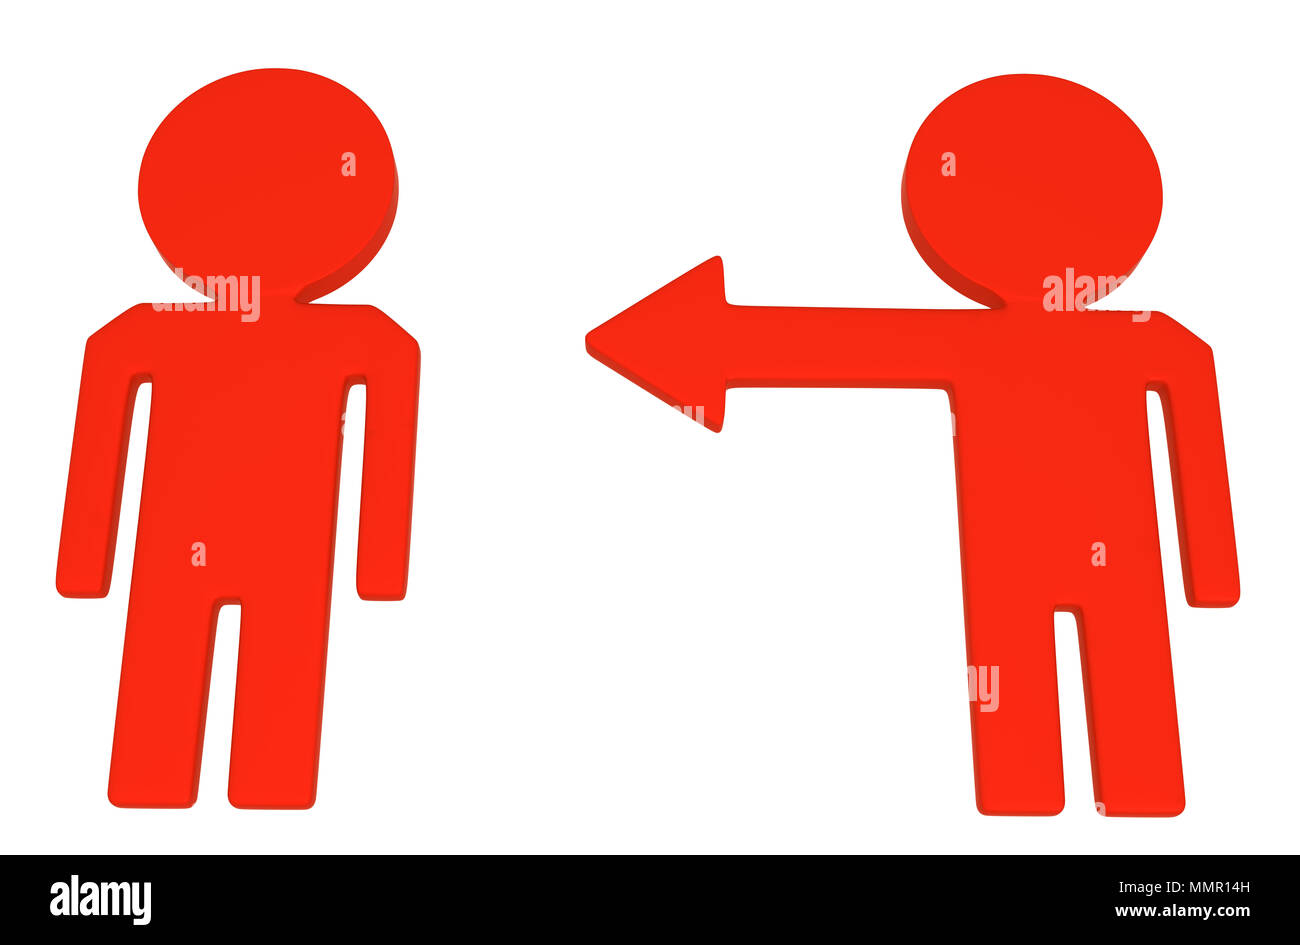 Red symbolic arrow people symbol pointing, 3d illustration, horizontal, over white, isolated - Stock Image